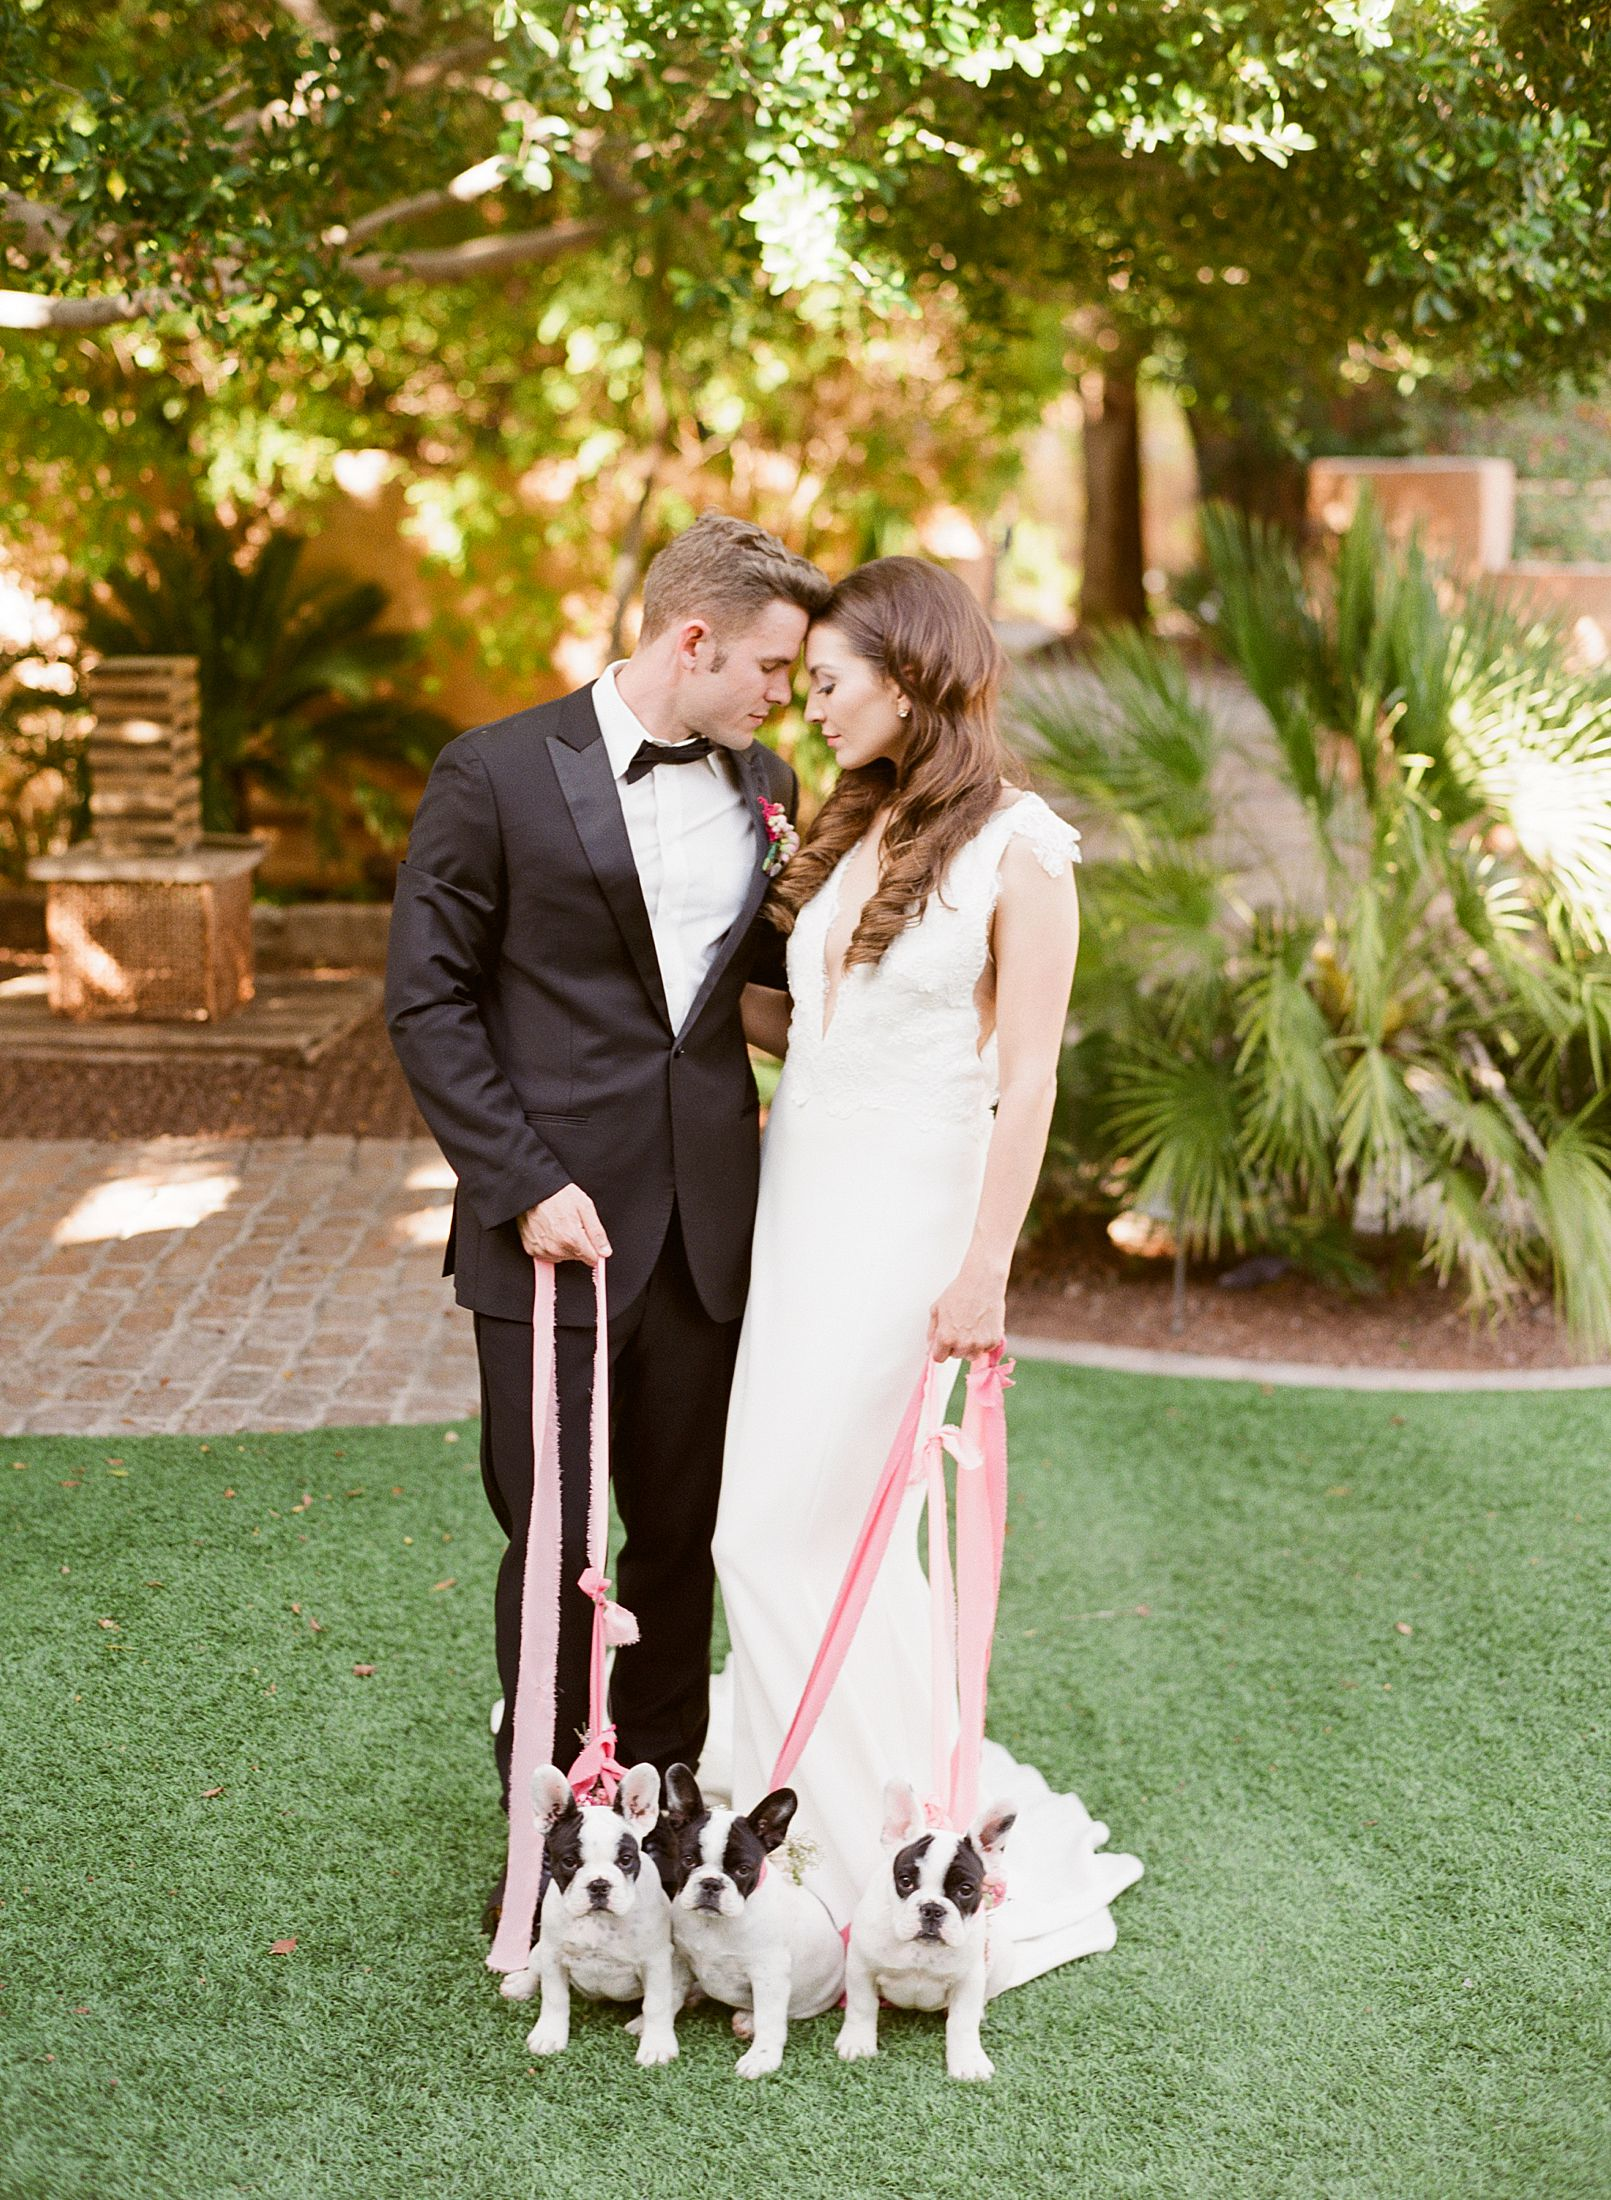 Pink Ombre Wedding Inspiration on Style Me Pretty - Royal Palms Wedding - Scottsdale Wedding - Ashley Baumgartner - Bloom and Blueprint - Wedding Puppies - Bulldog Puppies_0013.jpg